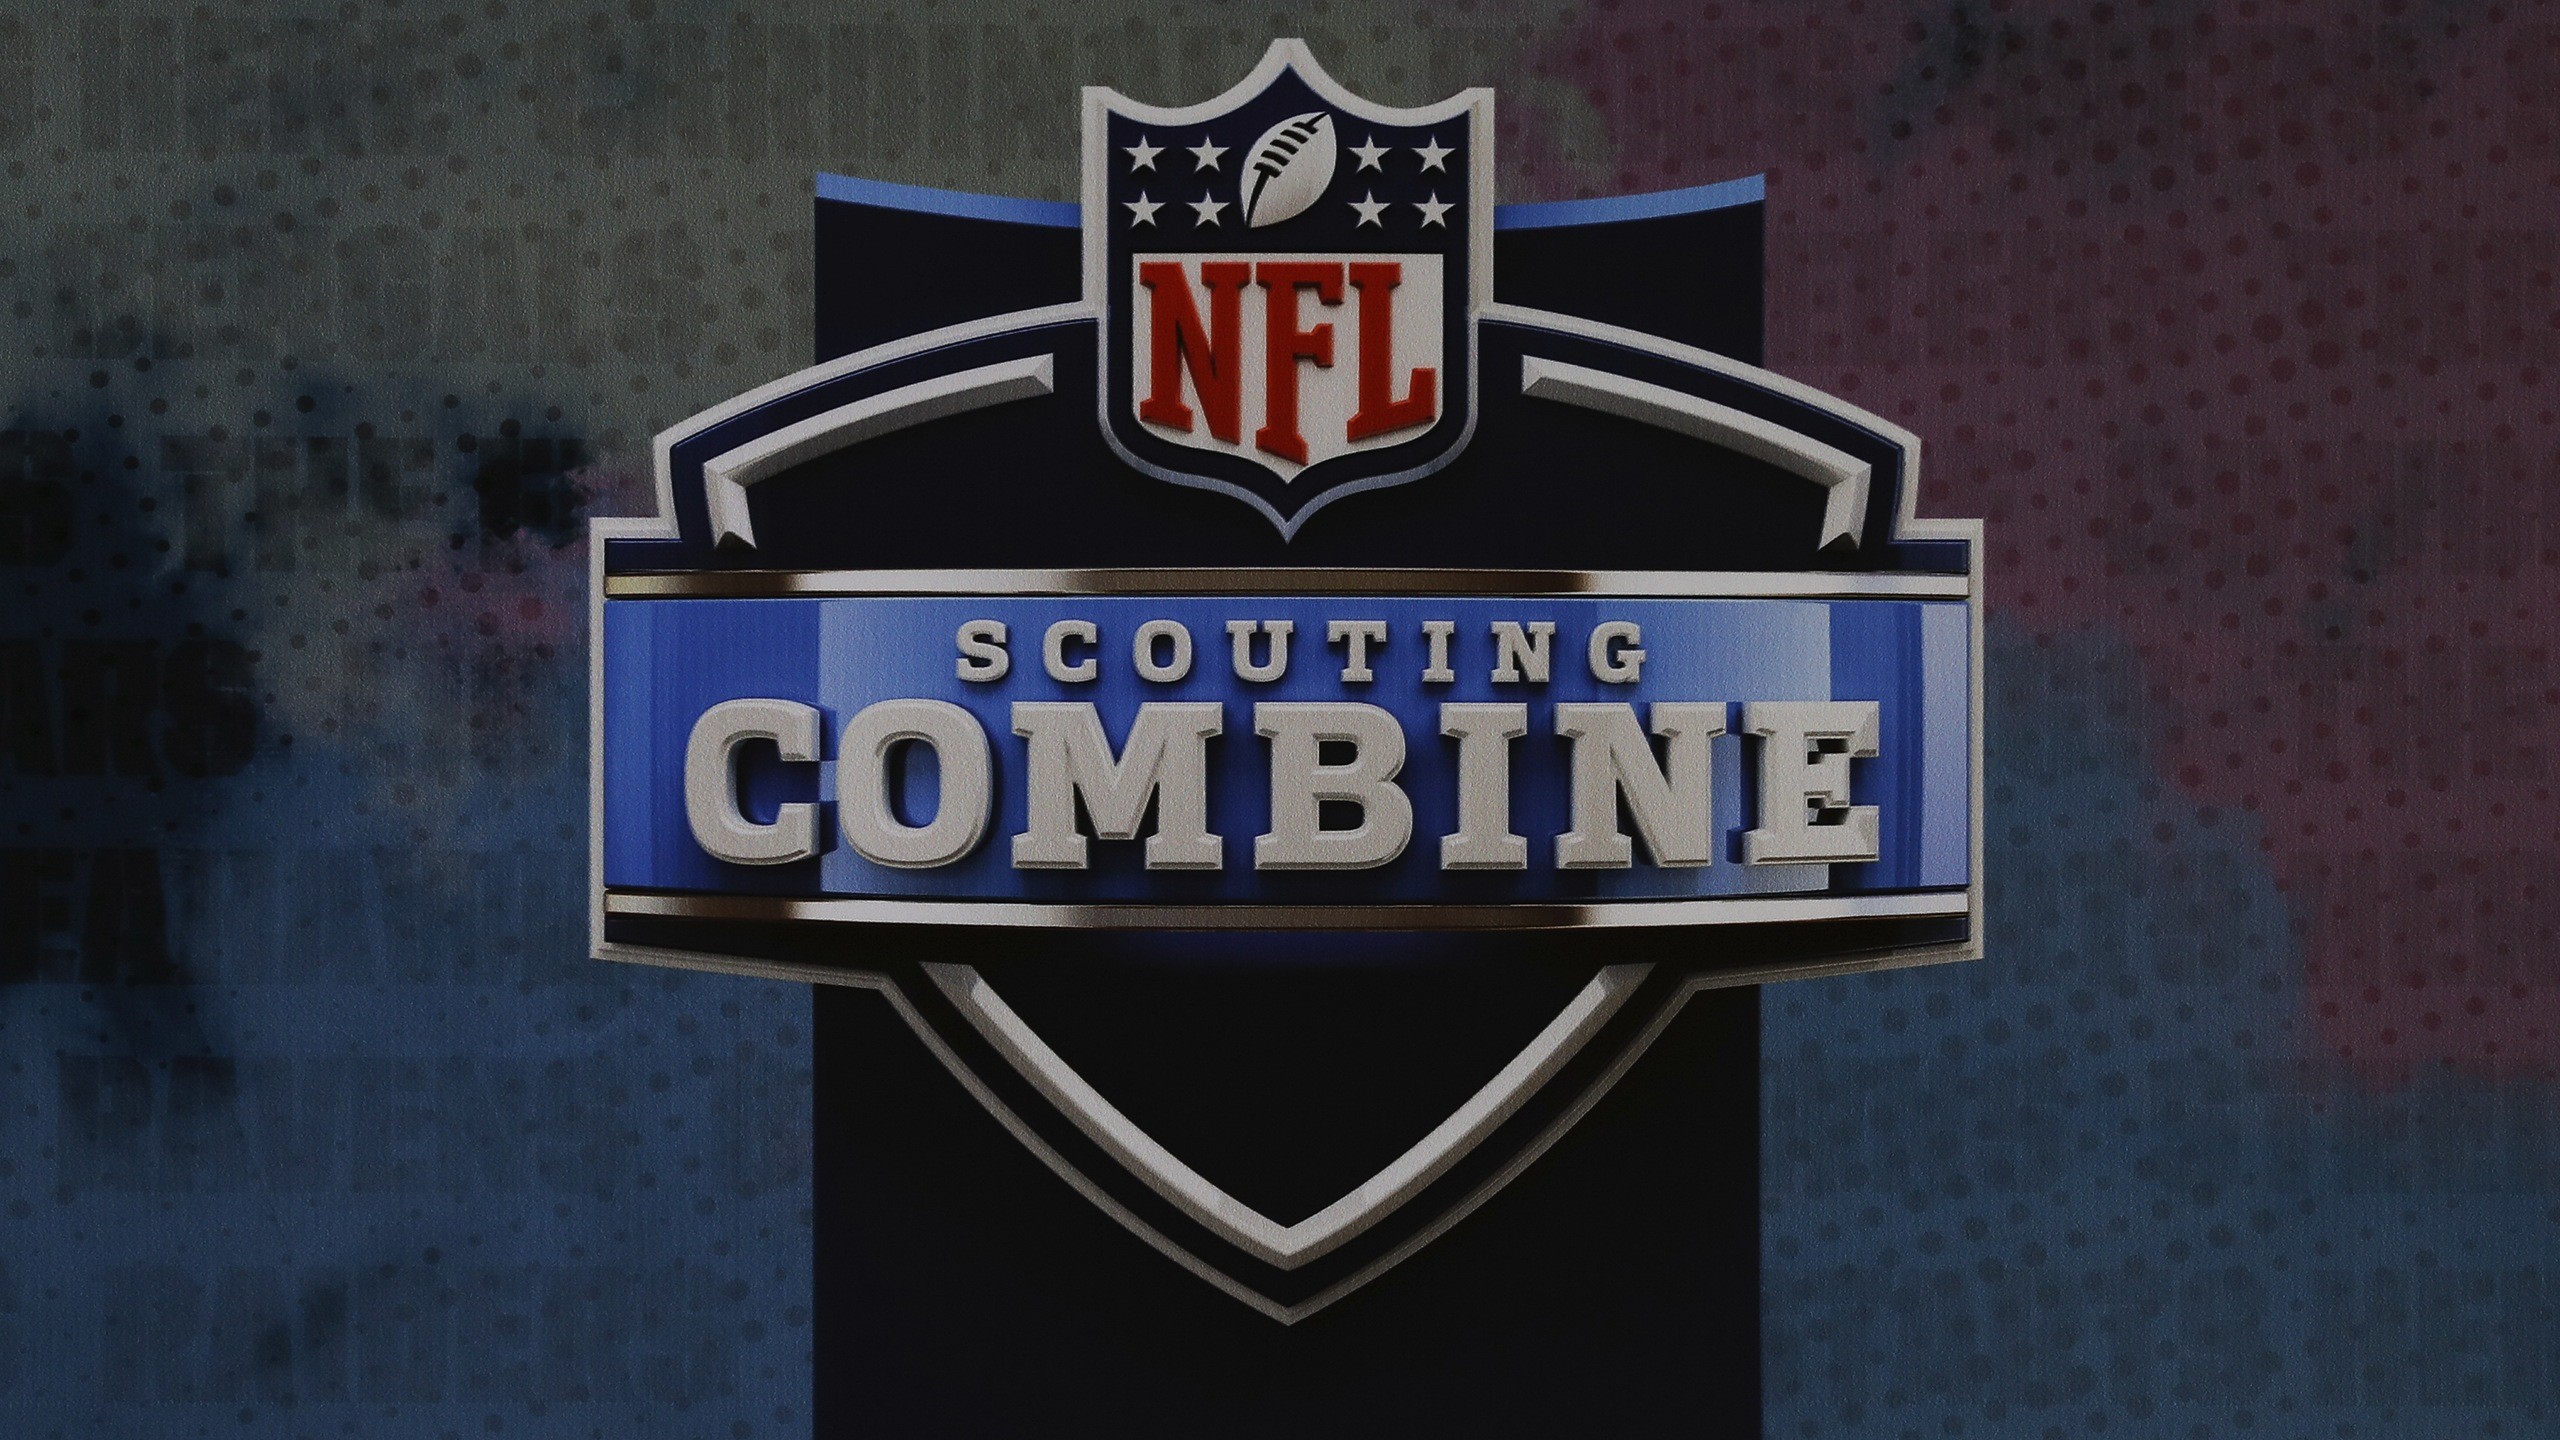 2020 NFL Scouting Combine